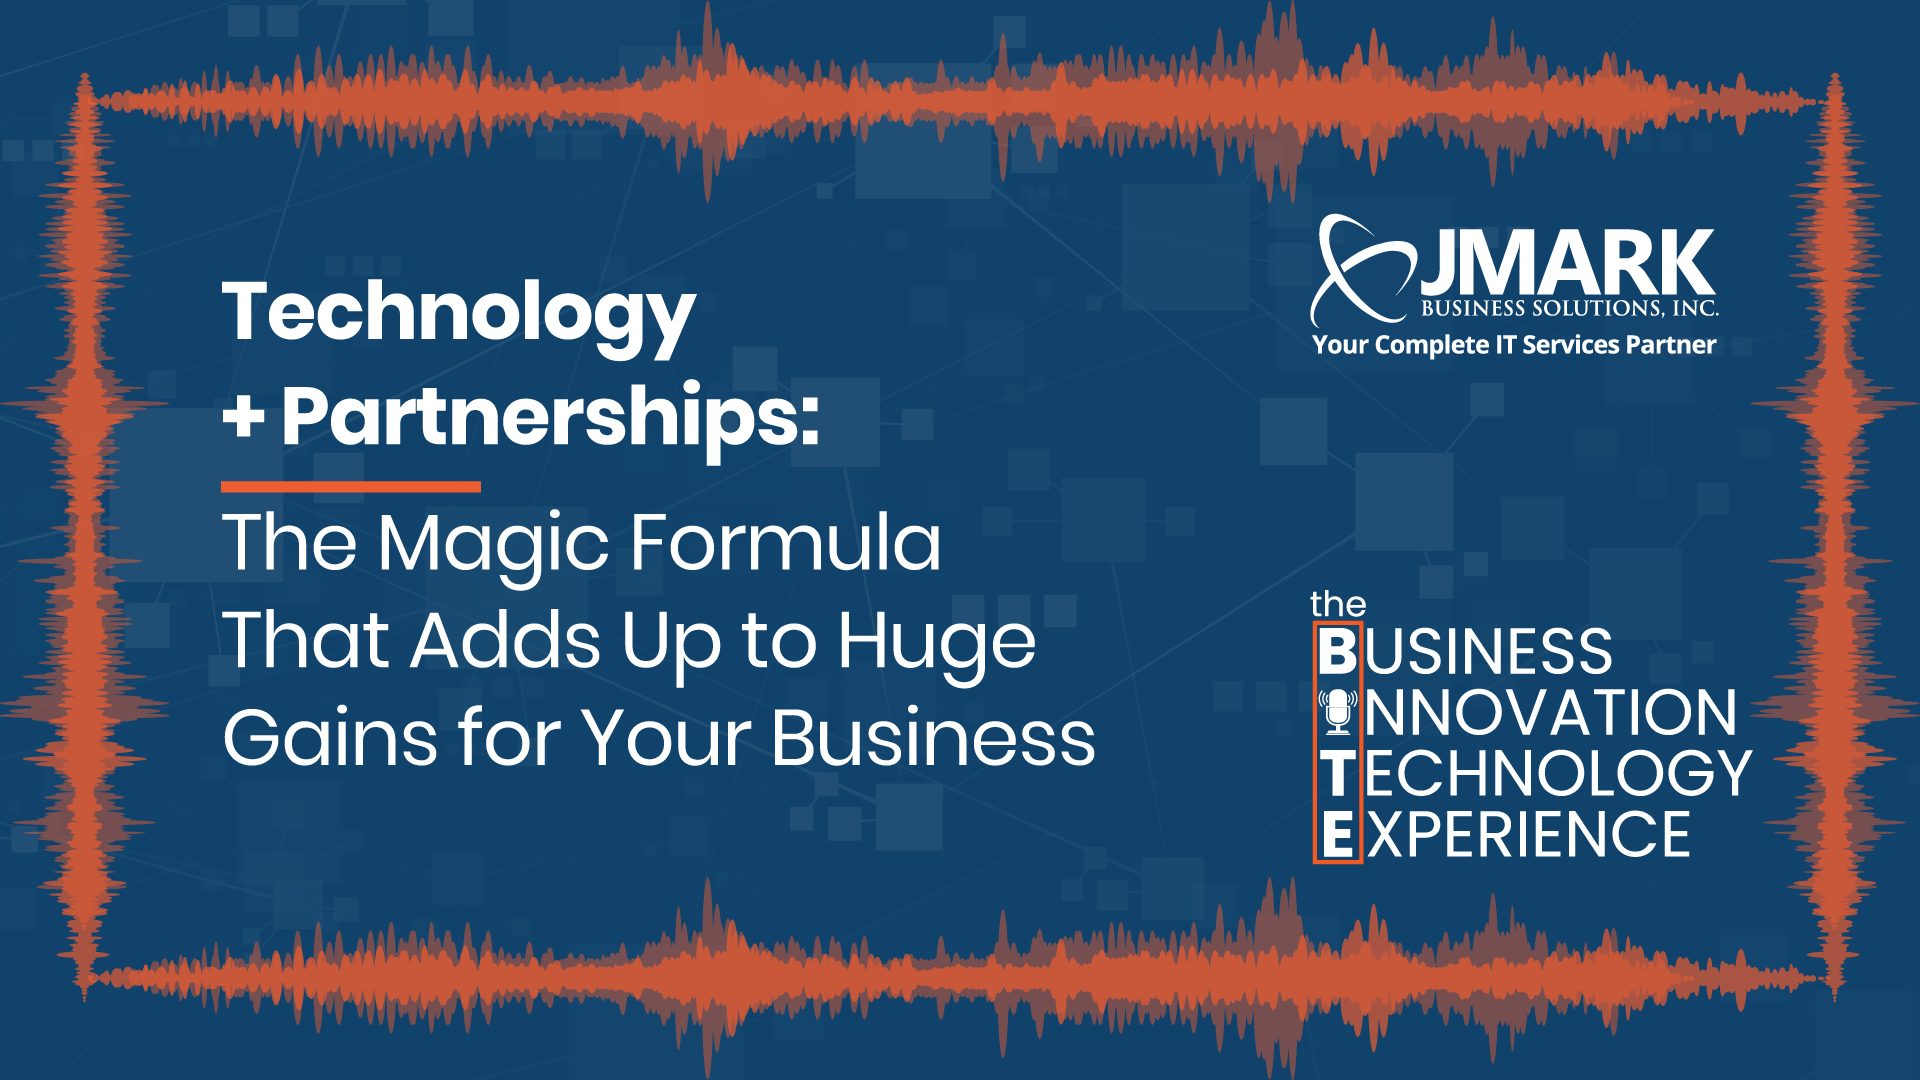 24. Technology + Partnerships: The Magic Formula That Adds Up to Huge Gains for Your Business